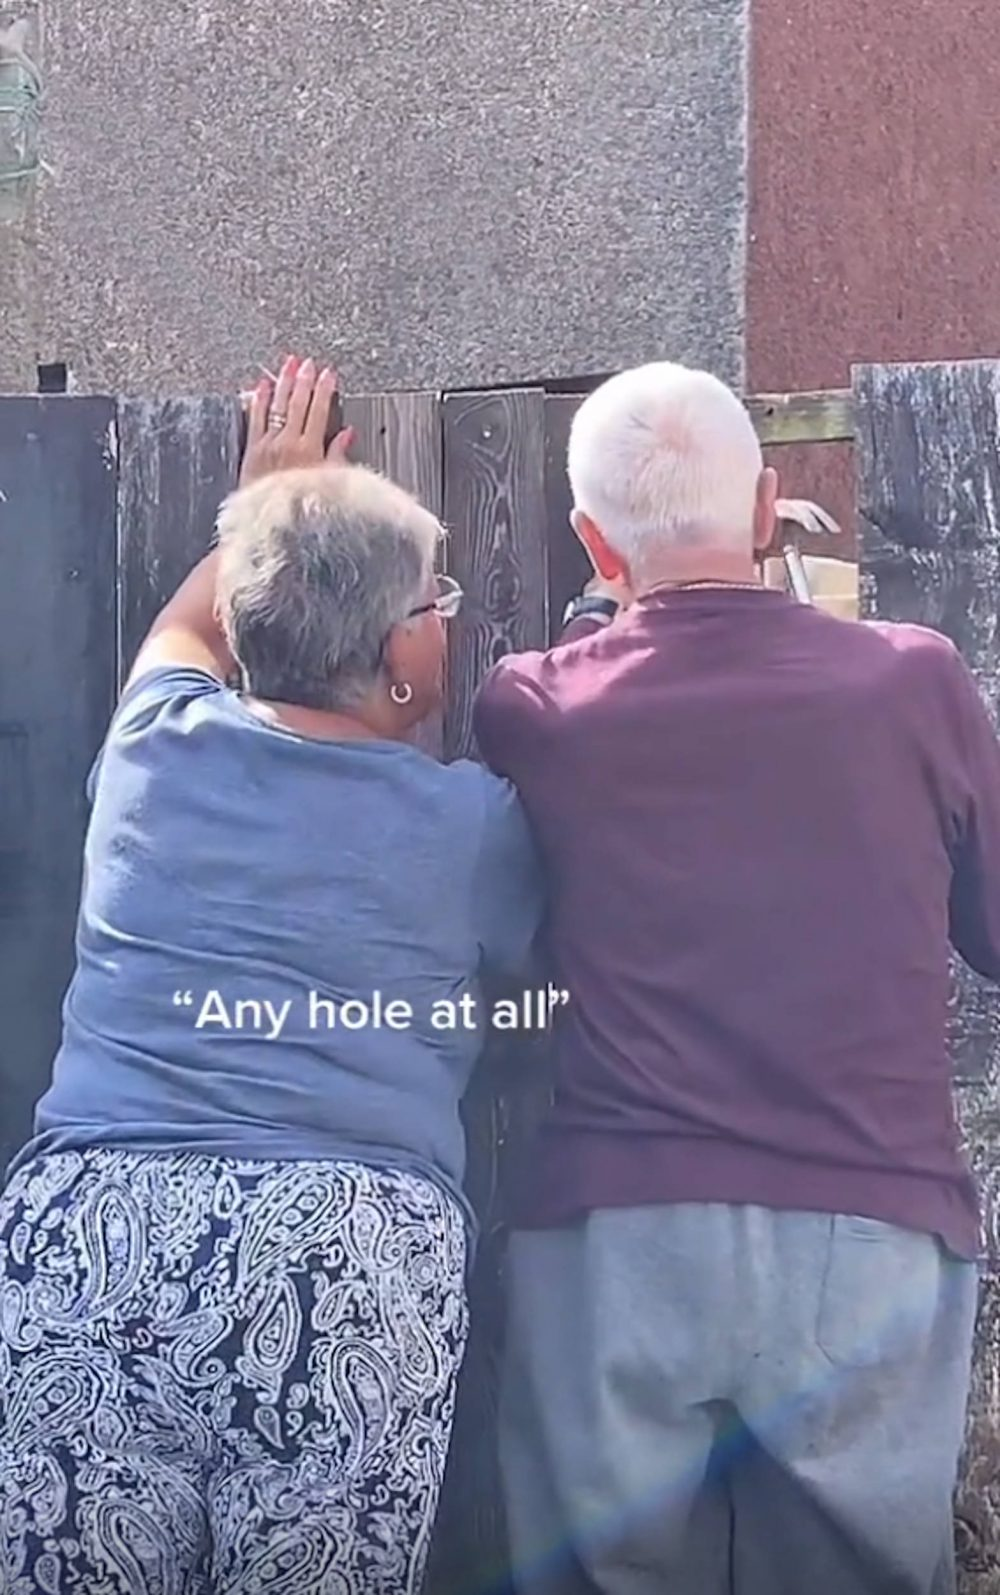 The cheeky pensioners | Viral News Scotland